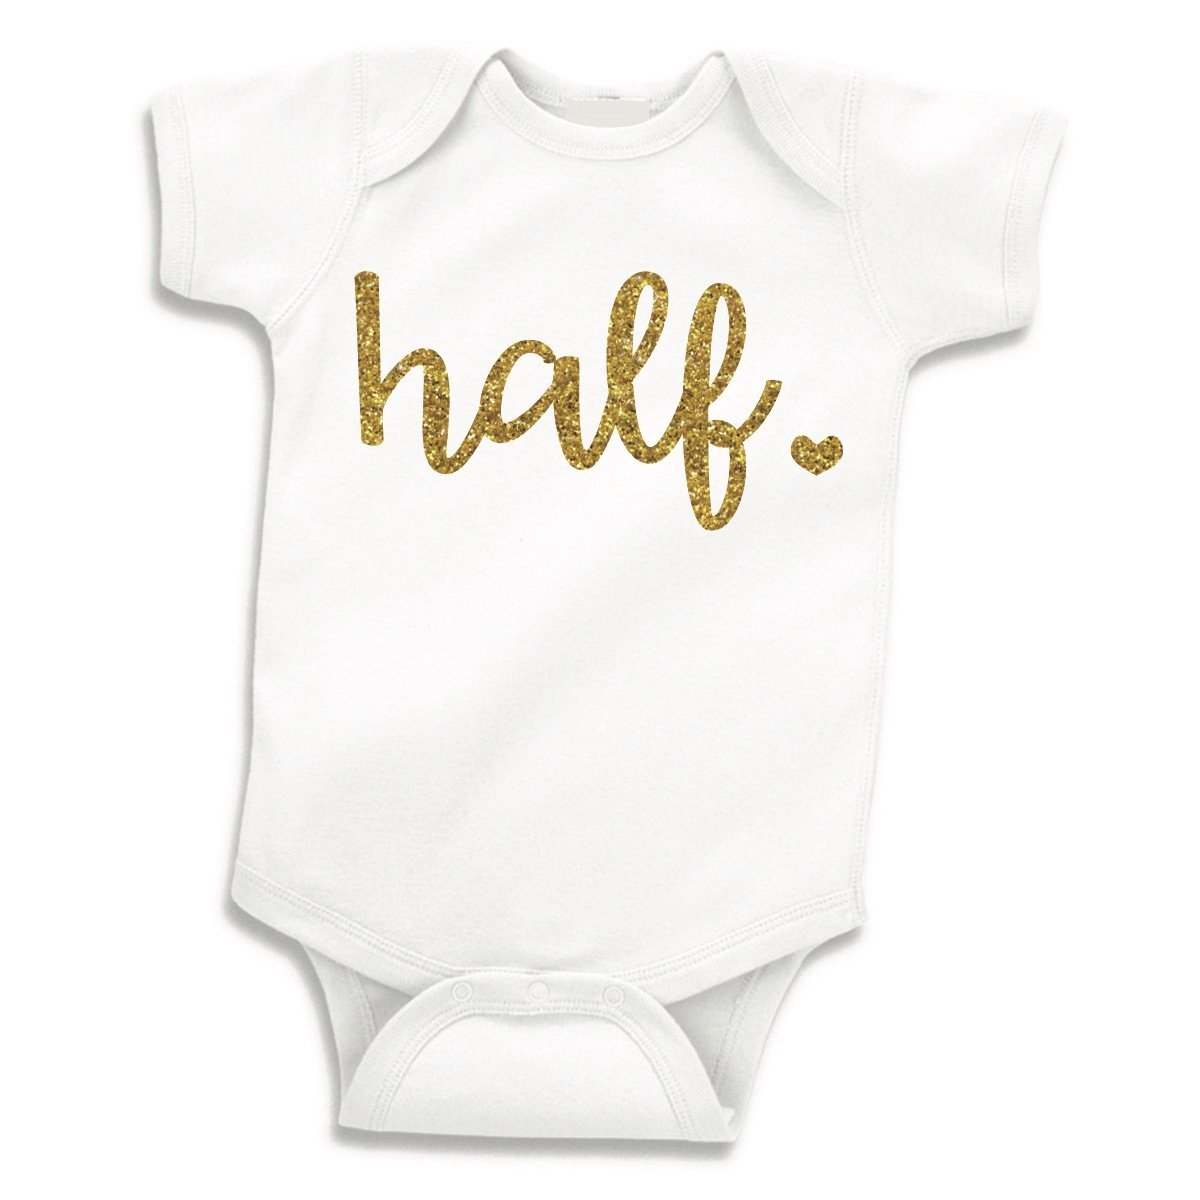 e39ef1fb Amazon.com: Half Birthday Outfit Baby Girl, 6 Month Photo Outfit Girl (6-12  Months): Baby